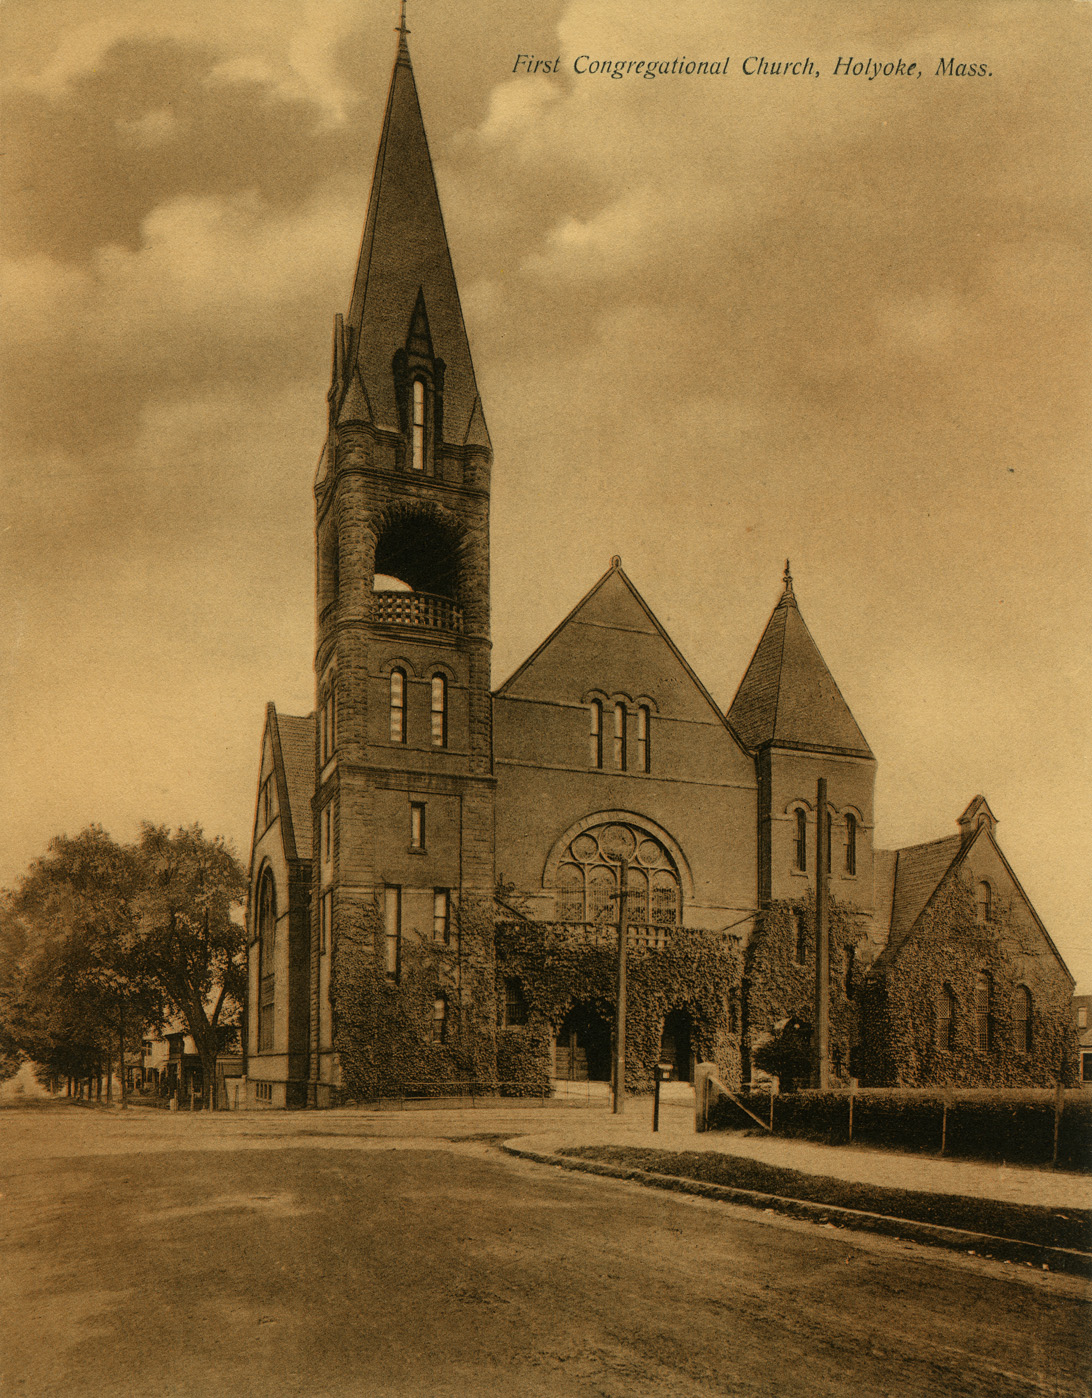 Depiction of First Congregational Church, ca.1910